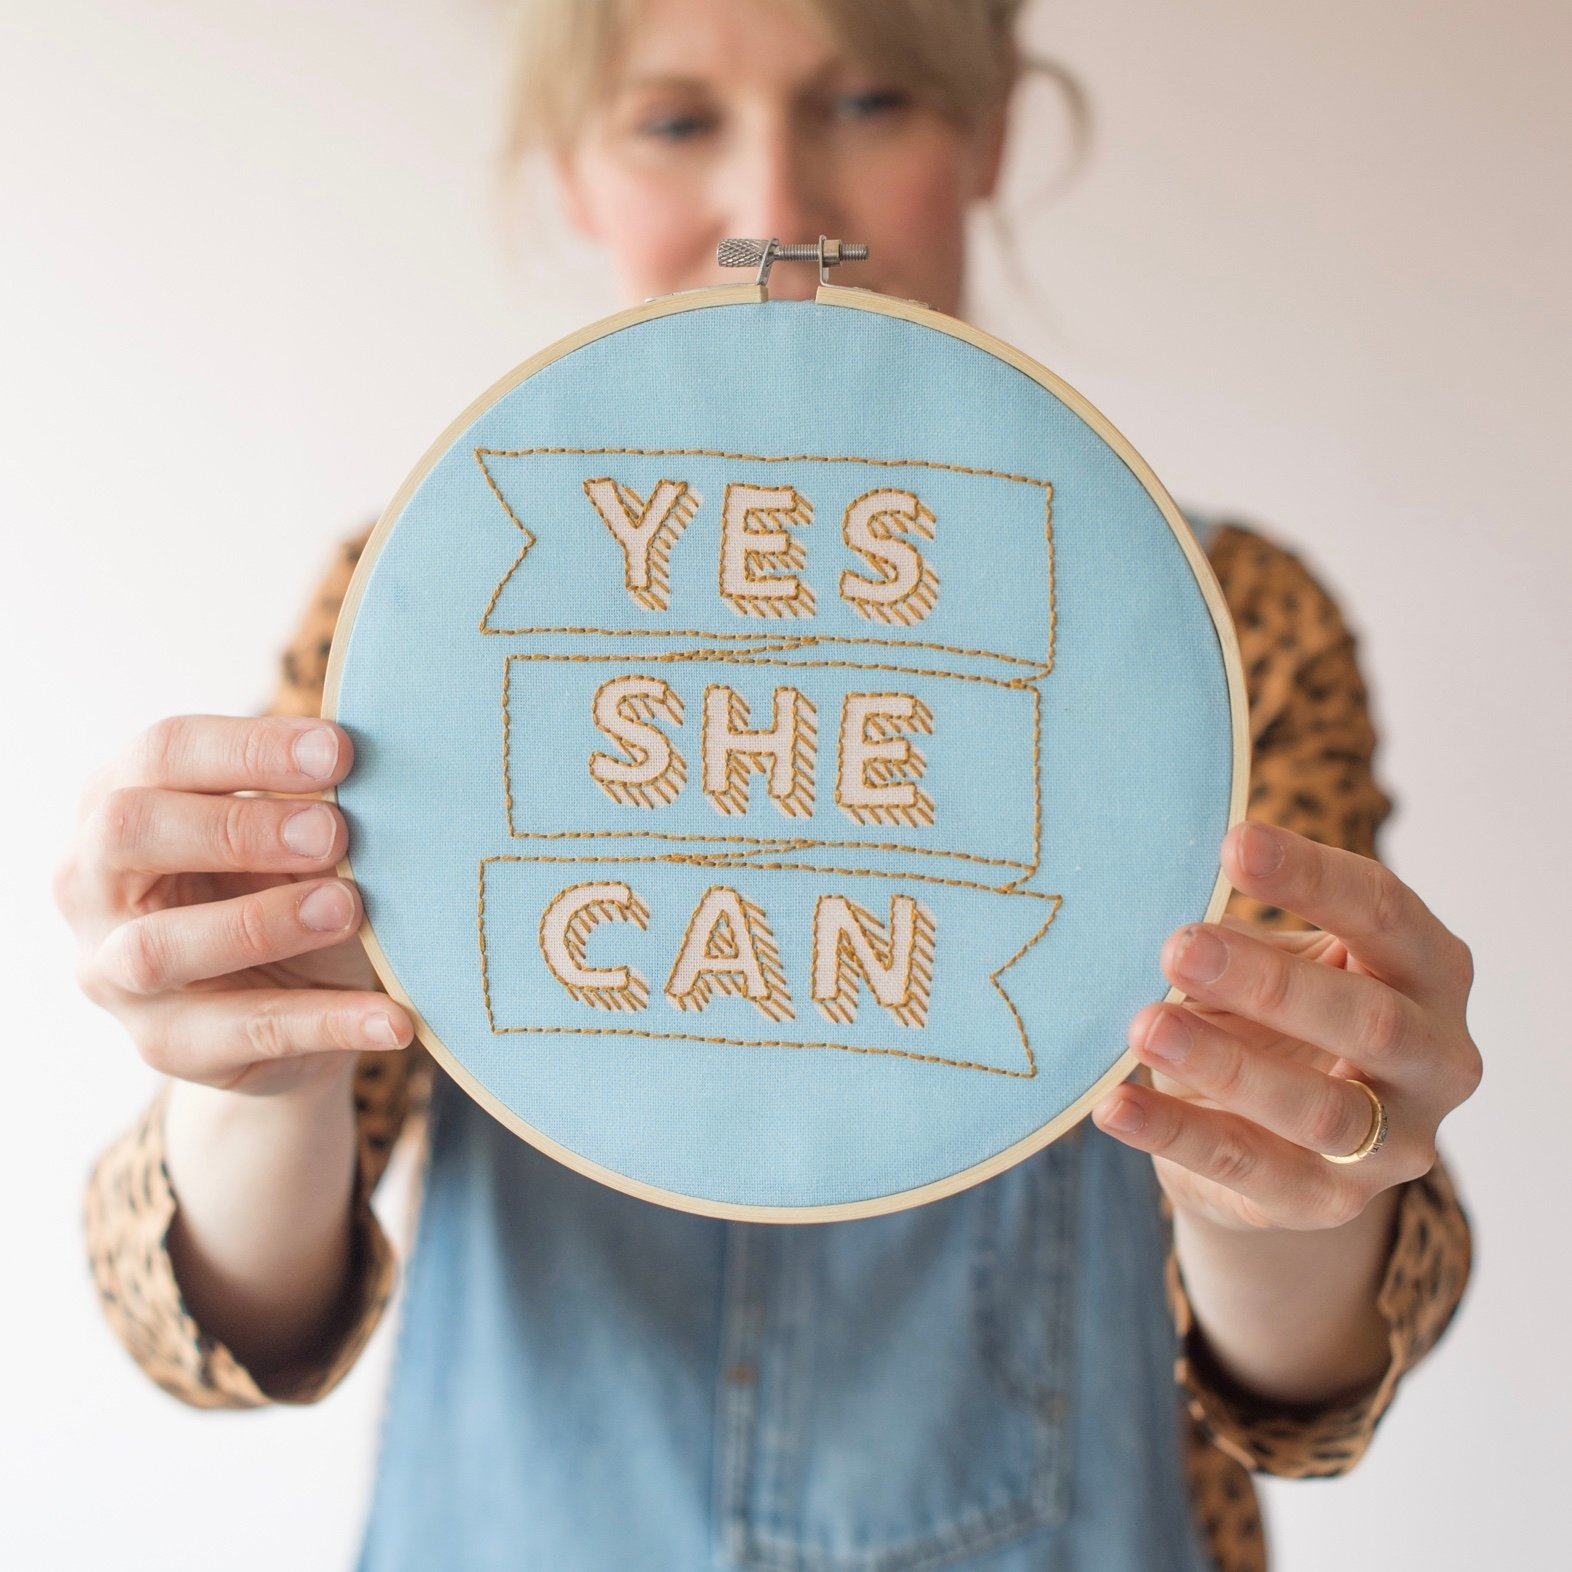 Yes She Can Embroidery Hoop Kit - Blue and Gold